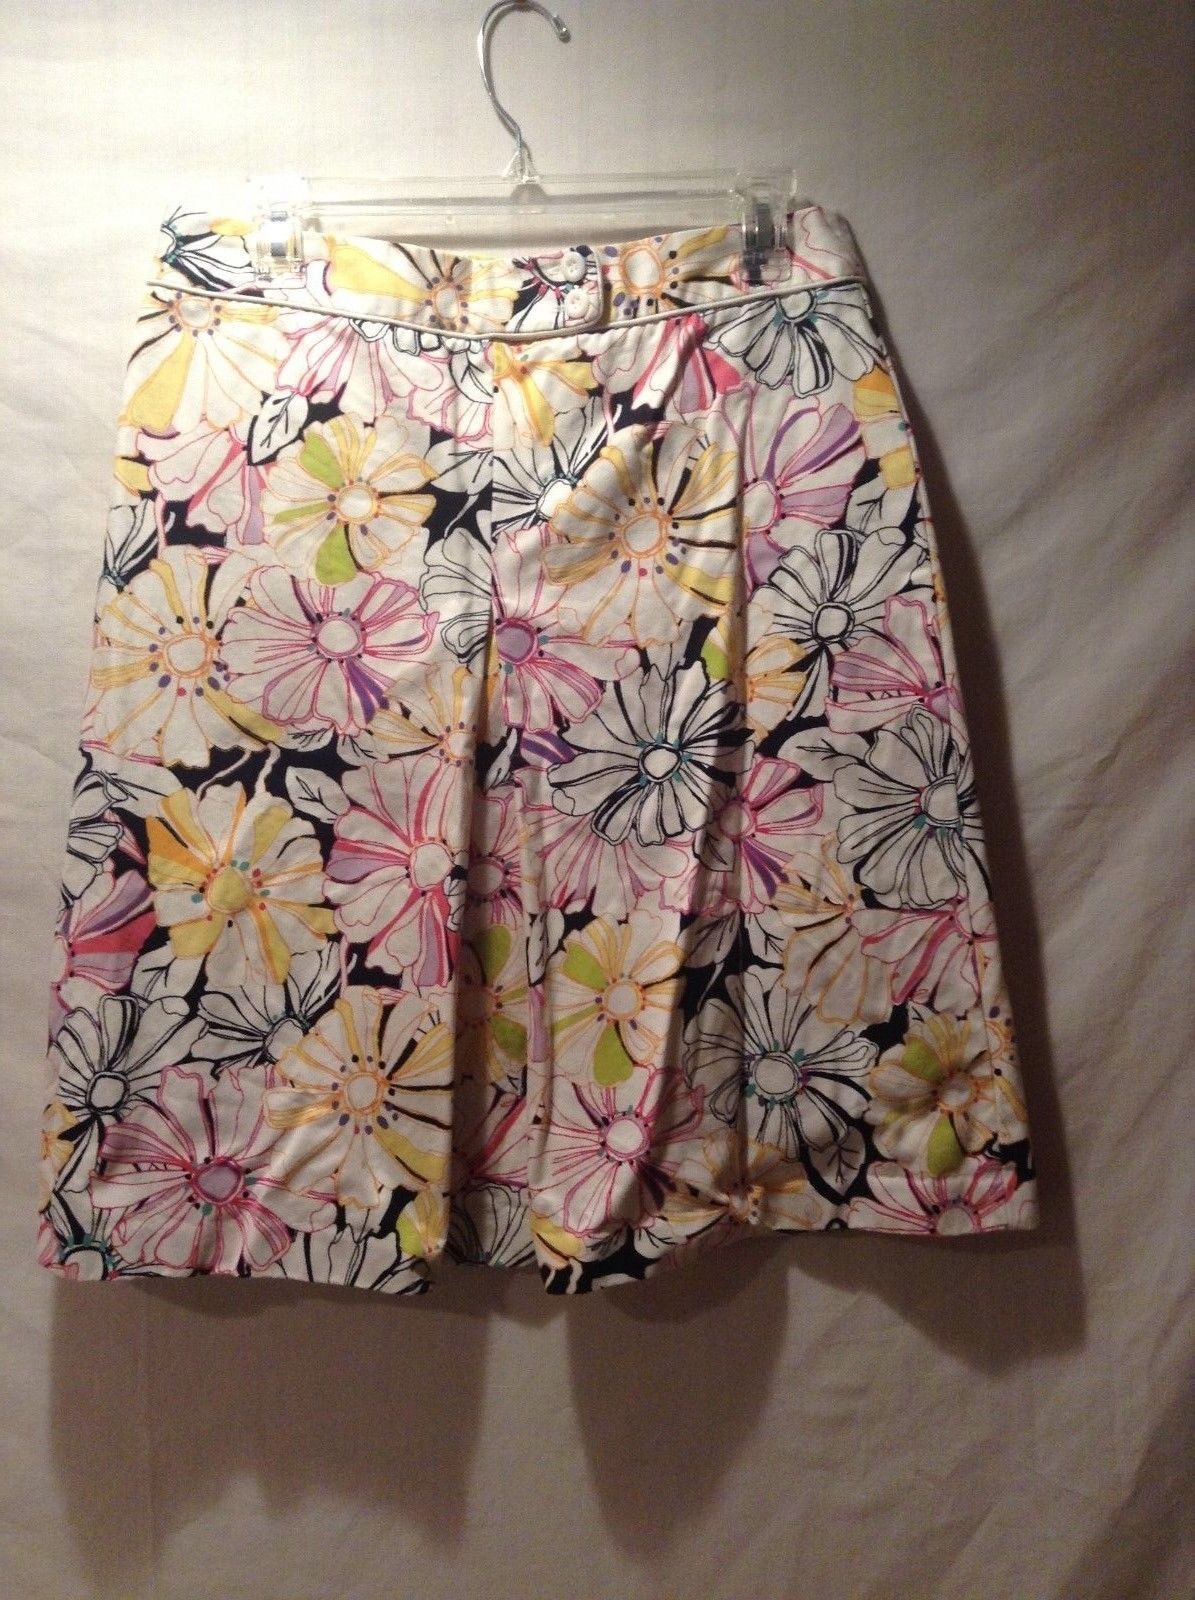 Lands' End 100% Cotton Floral Patterned Skirt Size 10